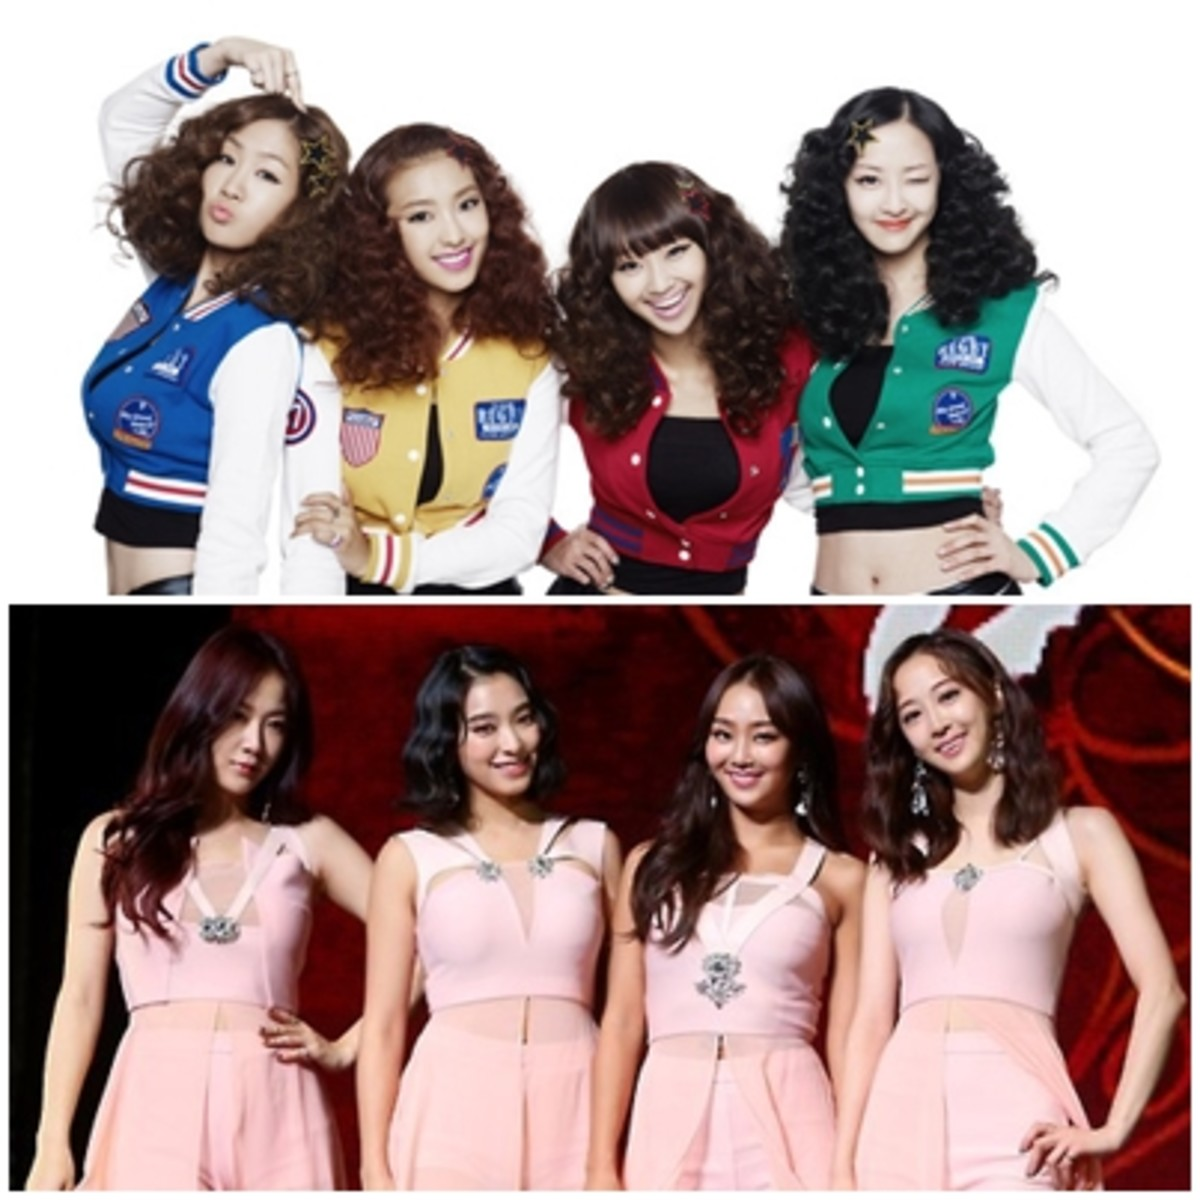 8 Disbanded Popular Kpop Girl Groups and Why They Broke Up | Spinditty